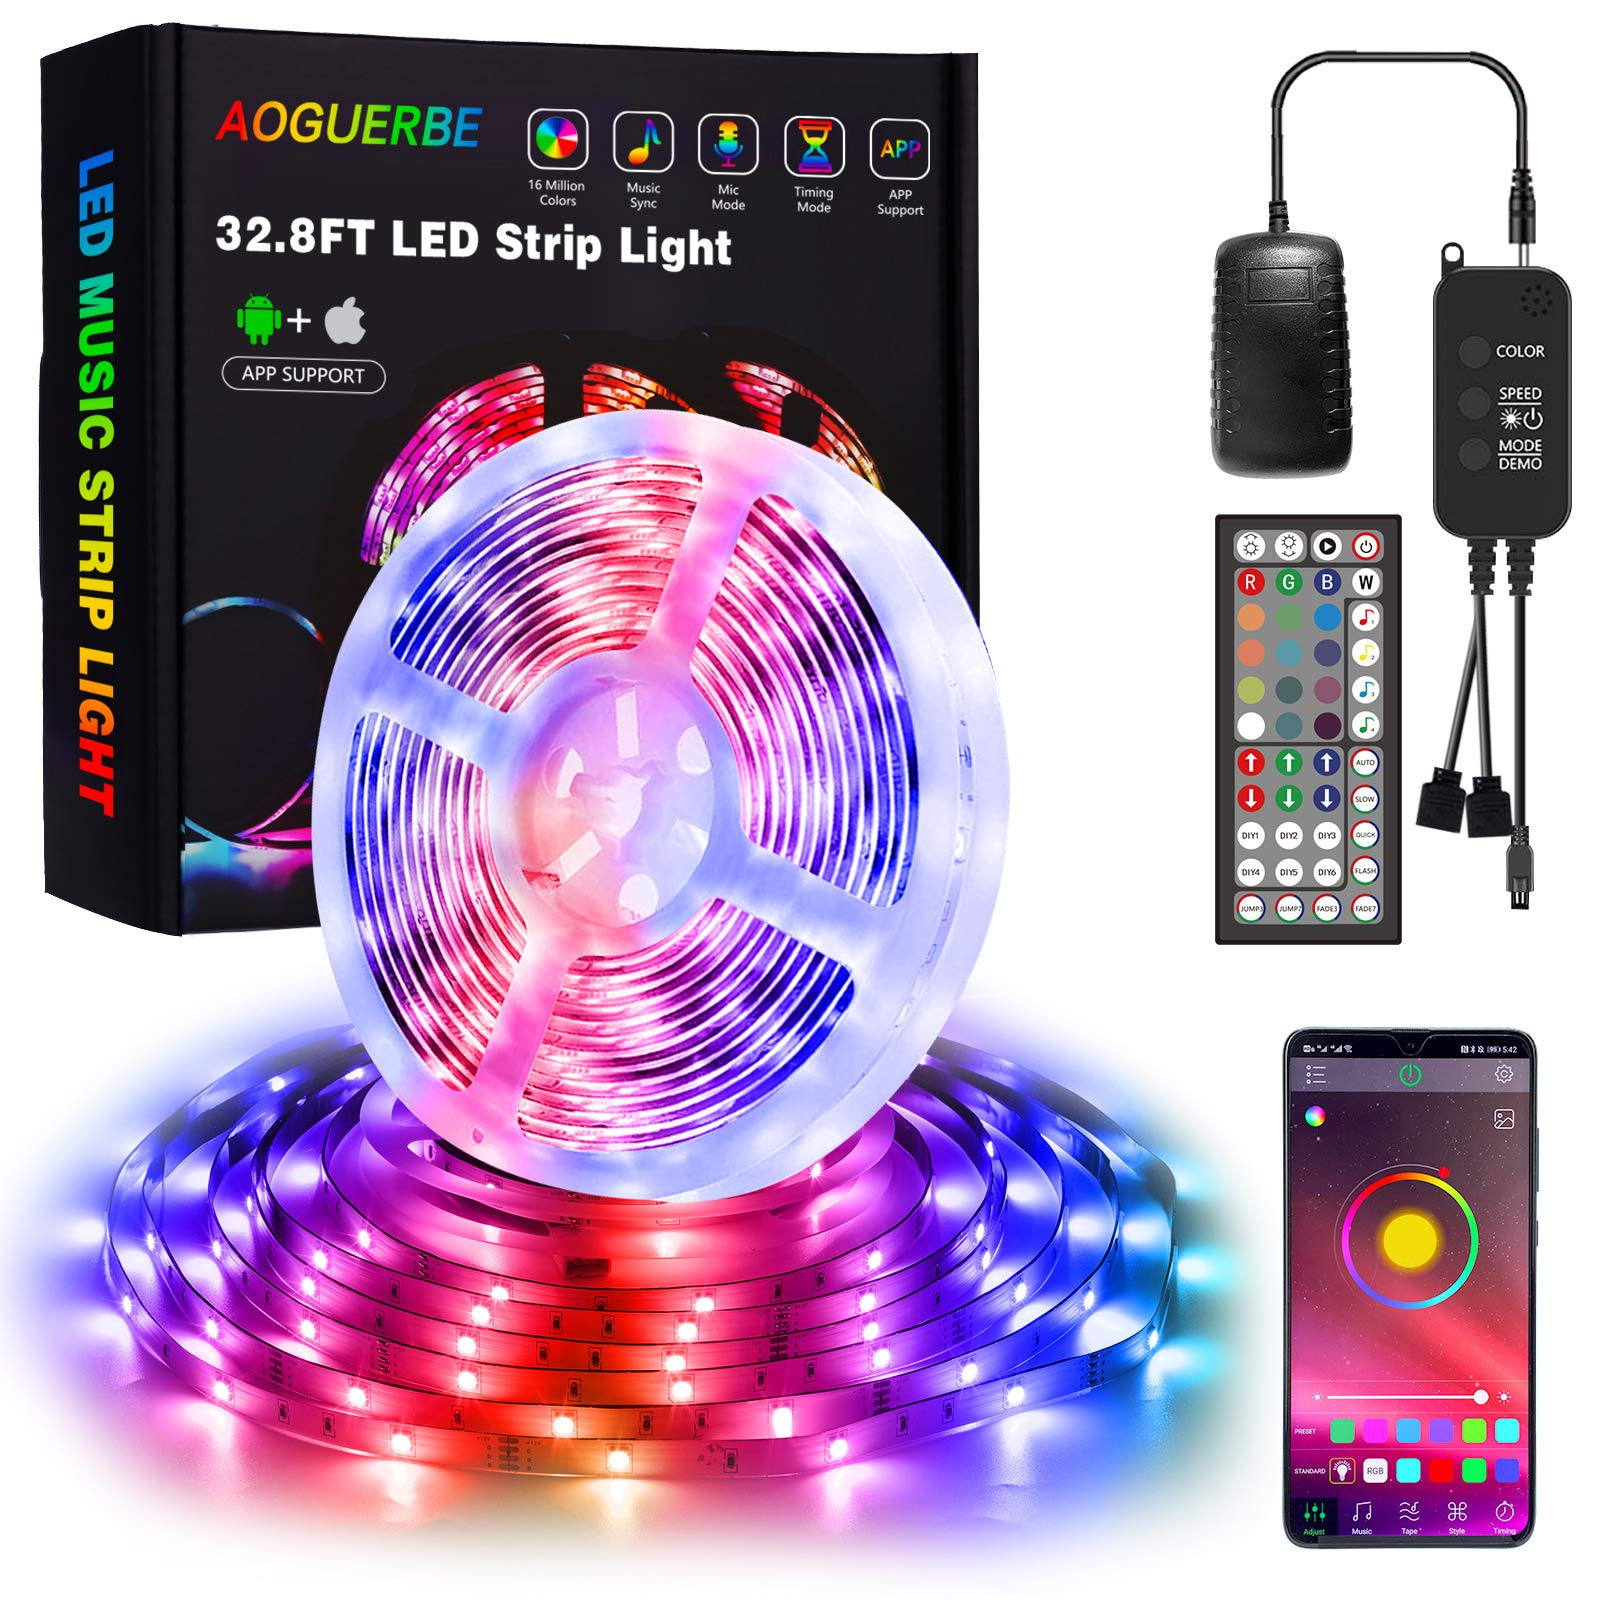 AOGUERBE LED Strip Lights 10m, Music Sync RGB Color Changing Lighting Strip, 5050 LED Light Strips Kit, App Control with 44 Keys Remote Control LED Lights for Bedroom, Party, TV, Kids Room, Kitchen